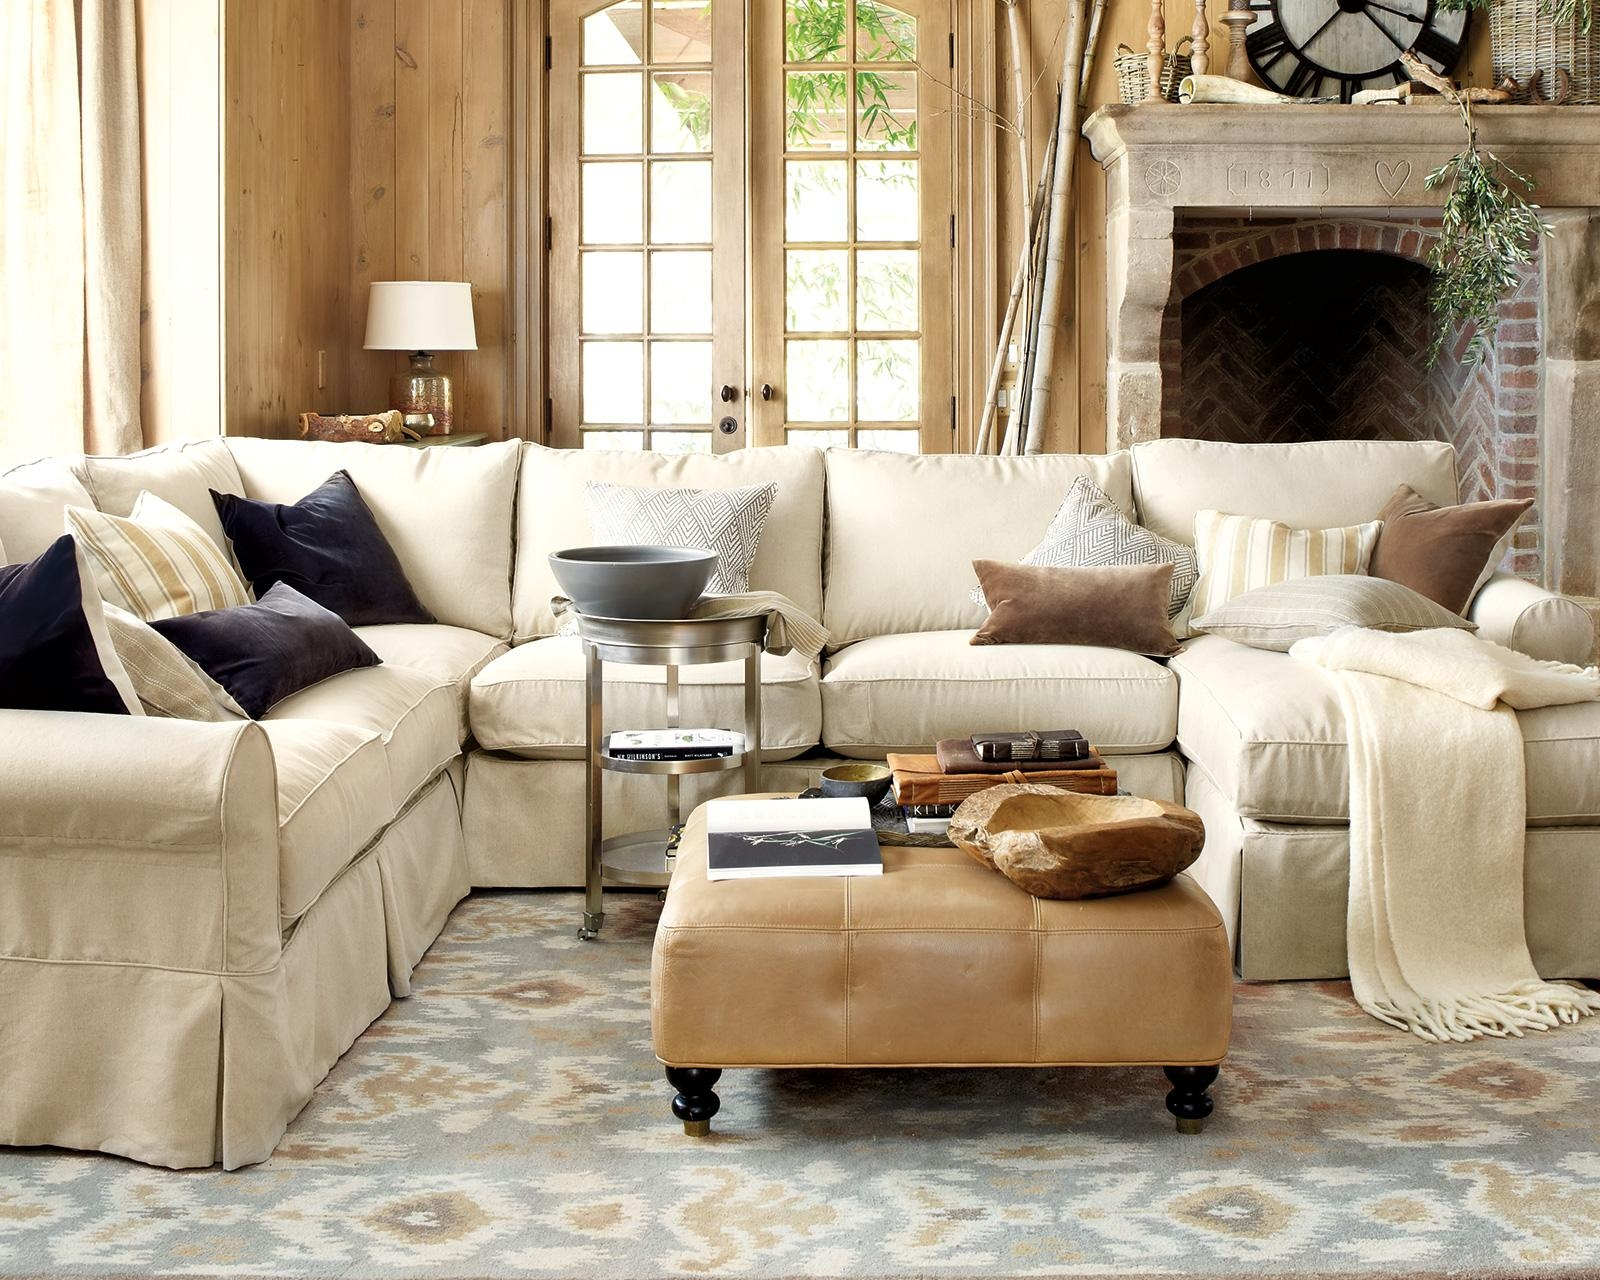 How To Match A Coffee Table To Your Sectional – How To Decorate Intended For Coffee Table For Sectional Sofa (Image 9 of 15)